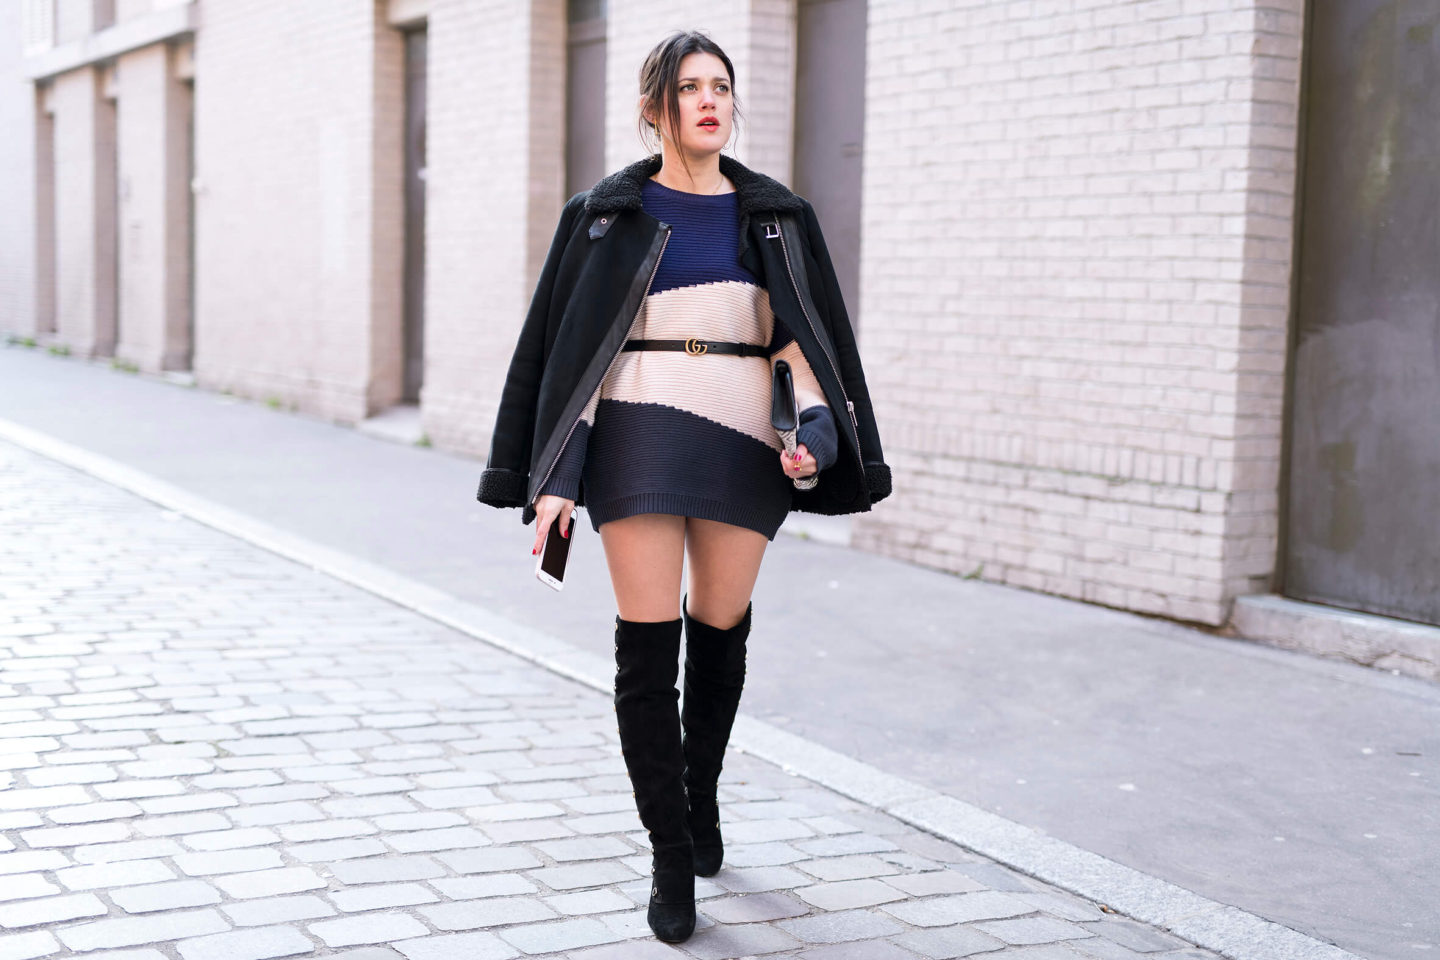 Look robe pull showroomprivé Cuissardes L'atelier d'al blog mode fashion lifestyle Street style Paris Look robe pull showroomprivé Cuissardes L'atelier d'al blog mode fashion lifestyle Street style Paris